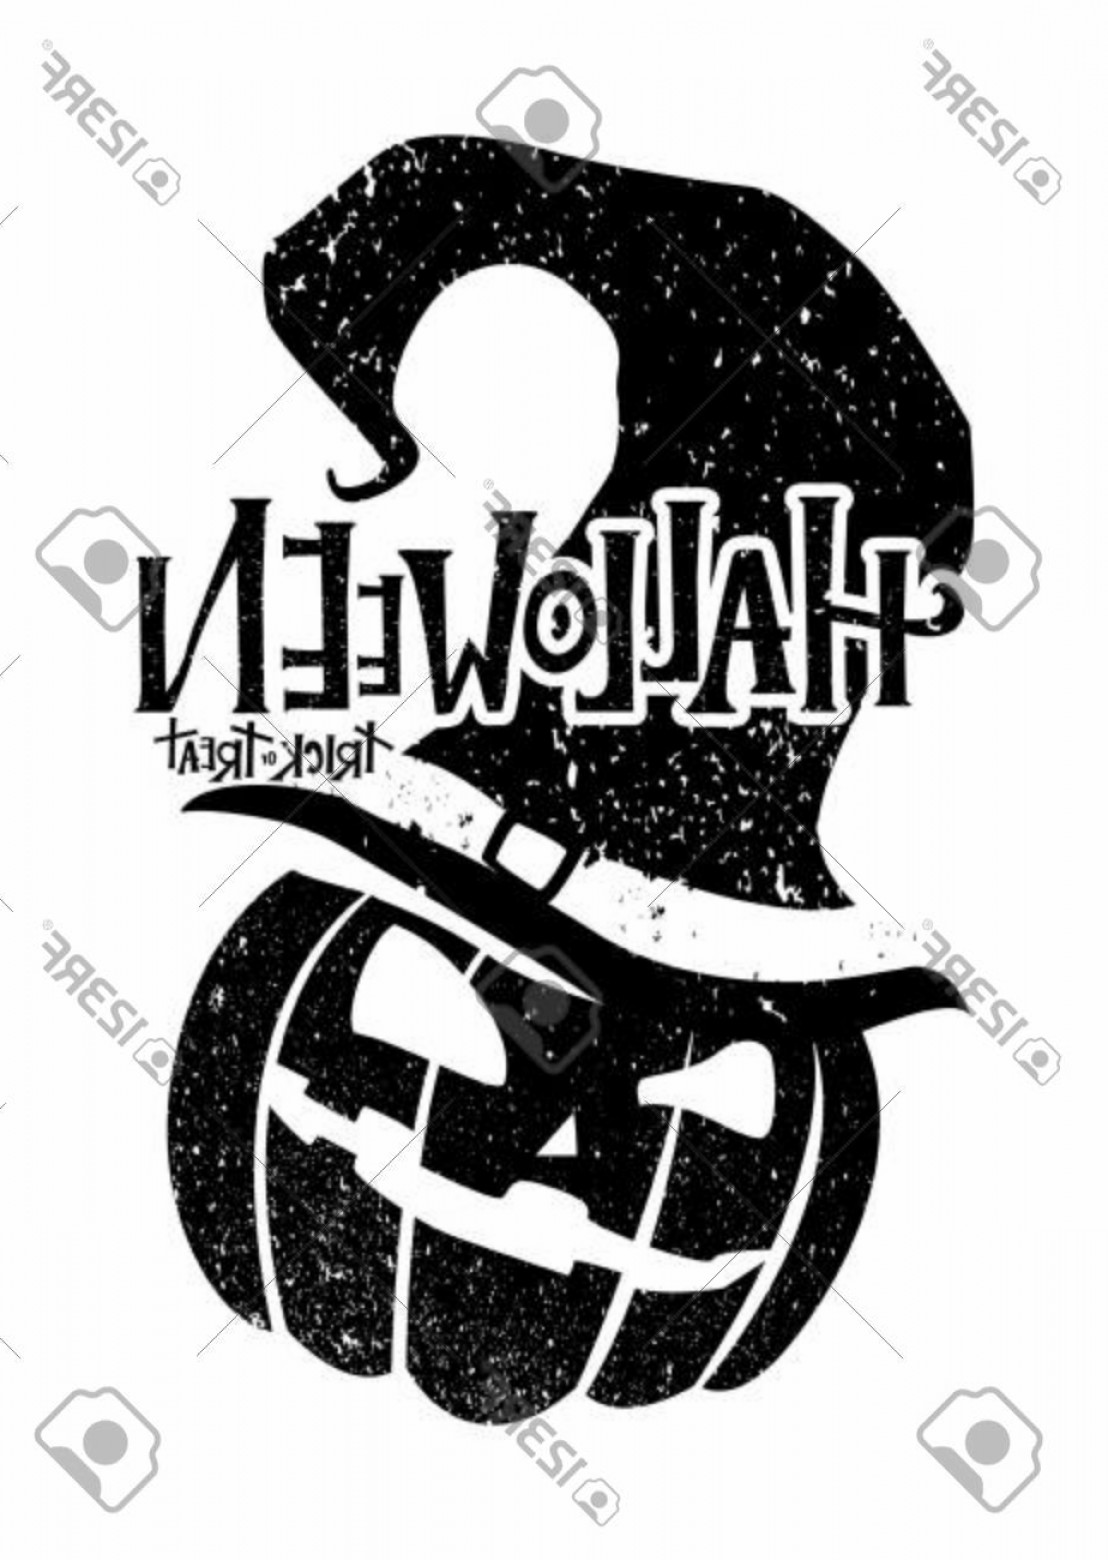 Black And White Flyer Vectors: Photostock Vector Black And White Halloween With Pumpkin In A Witch Hat Halloween Illustration For Postcard Banner Fly